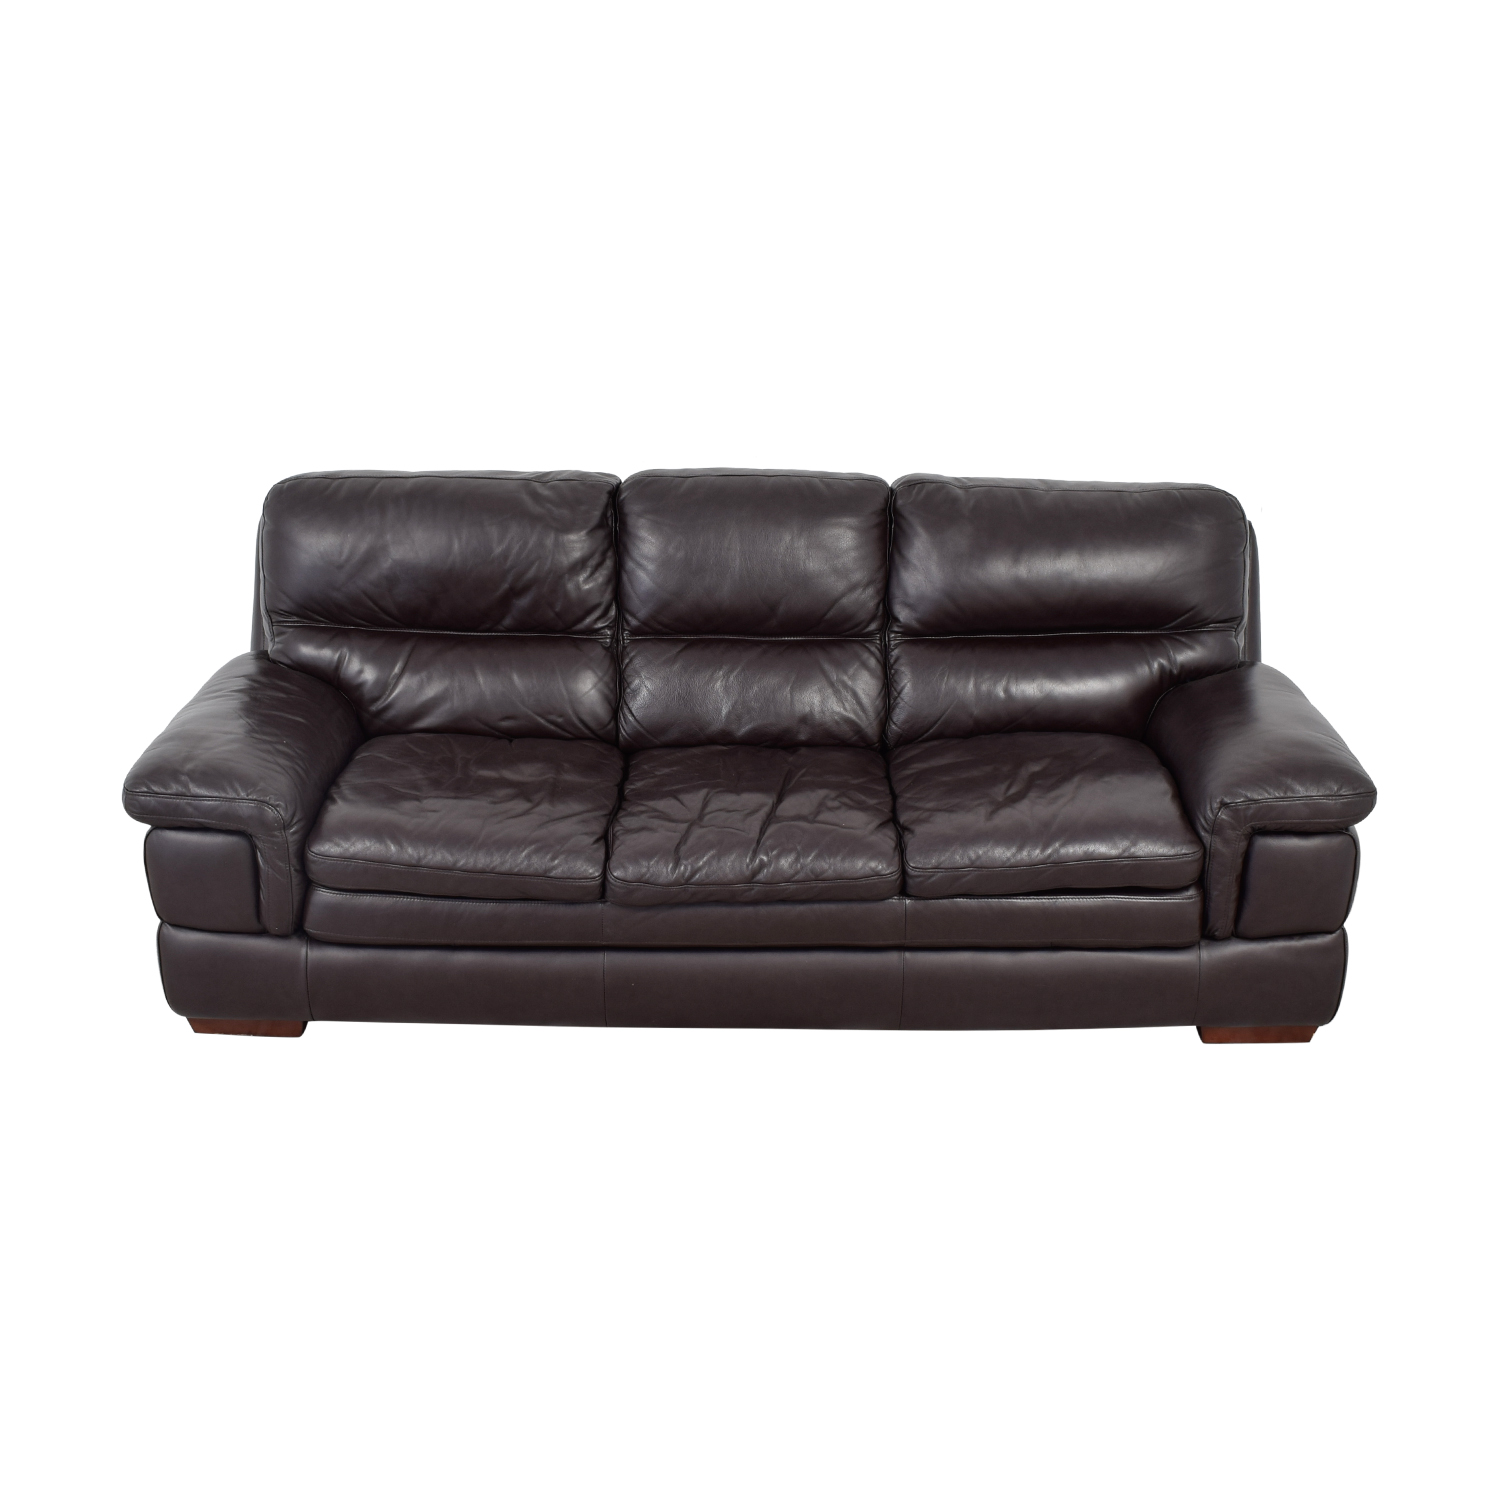 shop Bob's Furniture Carter Brown Leather Three-Cushion Sofa Bob's Furniture Sofas